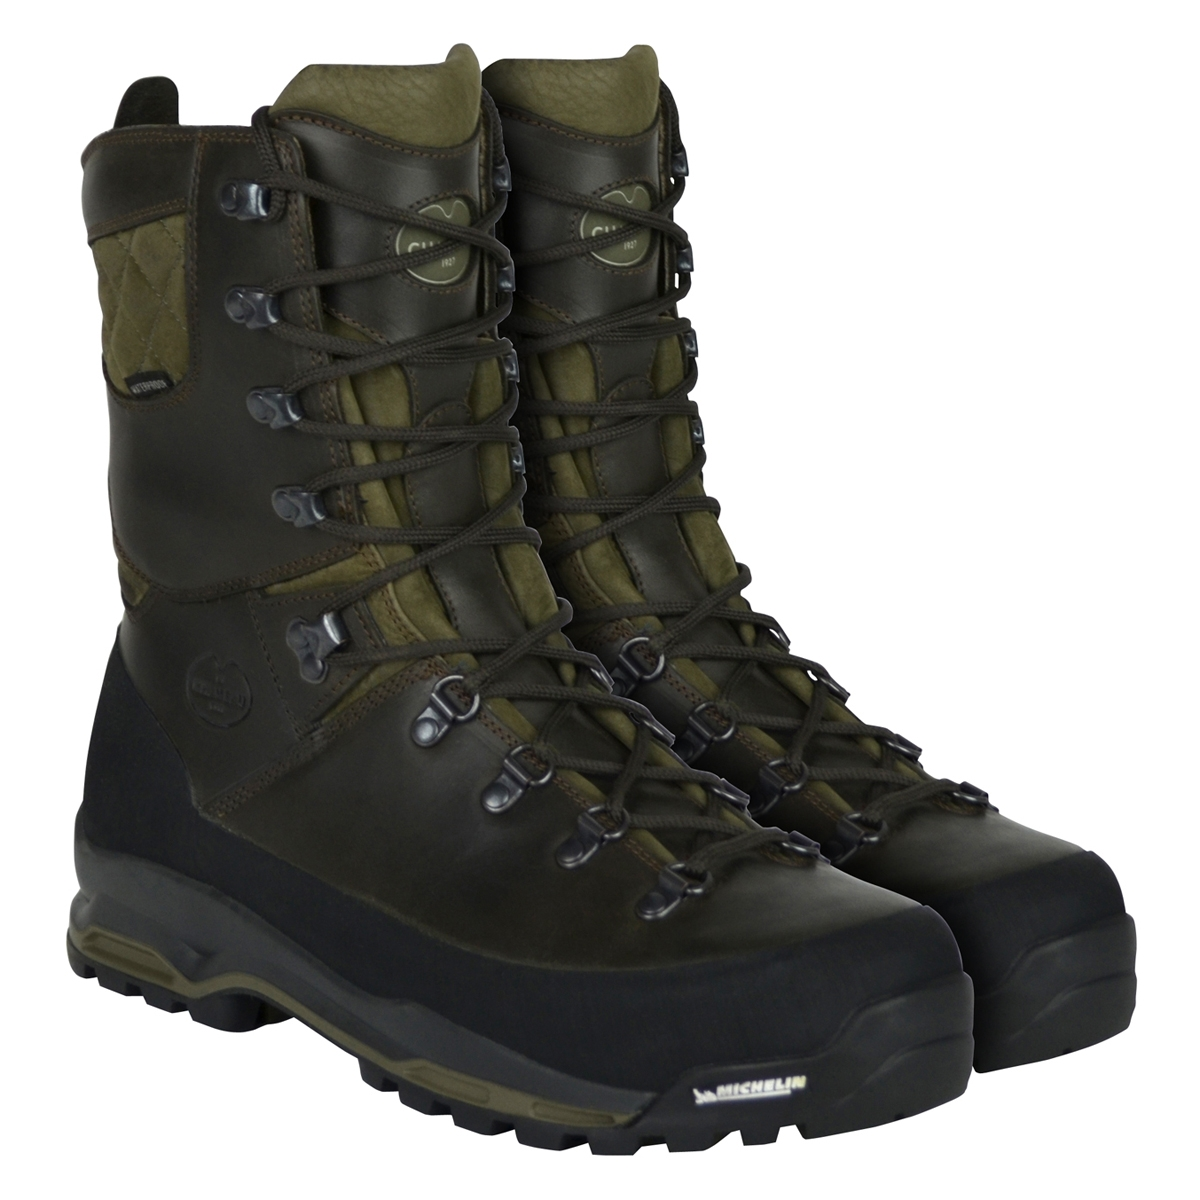 f559aa8db35ee Details about Le Chameau Condor / Chameau Lite LCX Hunting Boots